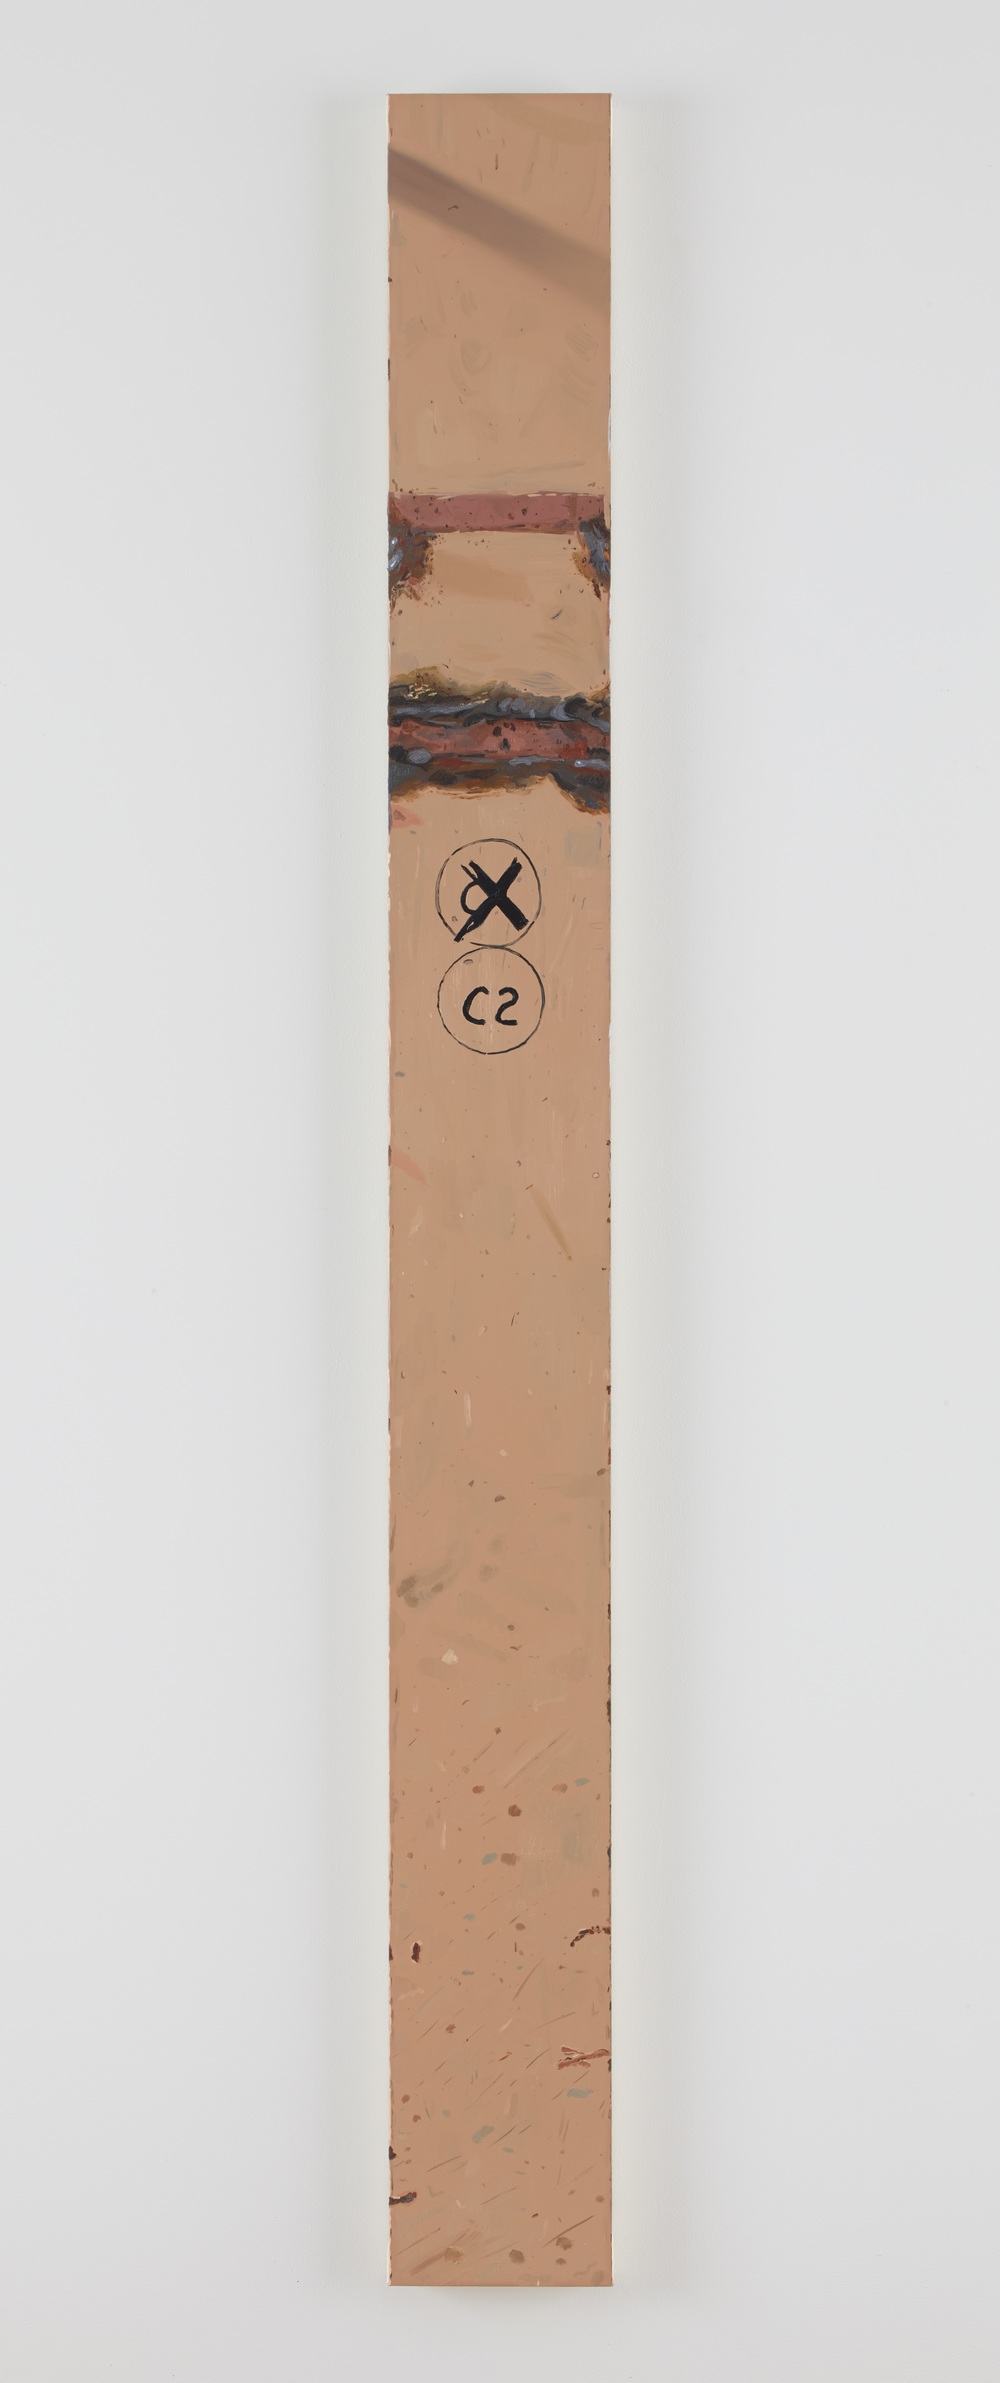 Josephine Halvorson   I-Beam 6 ,  2013  Oil on linen  79 x 8 in/ 200.7 x 20.3 cm